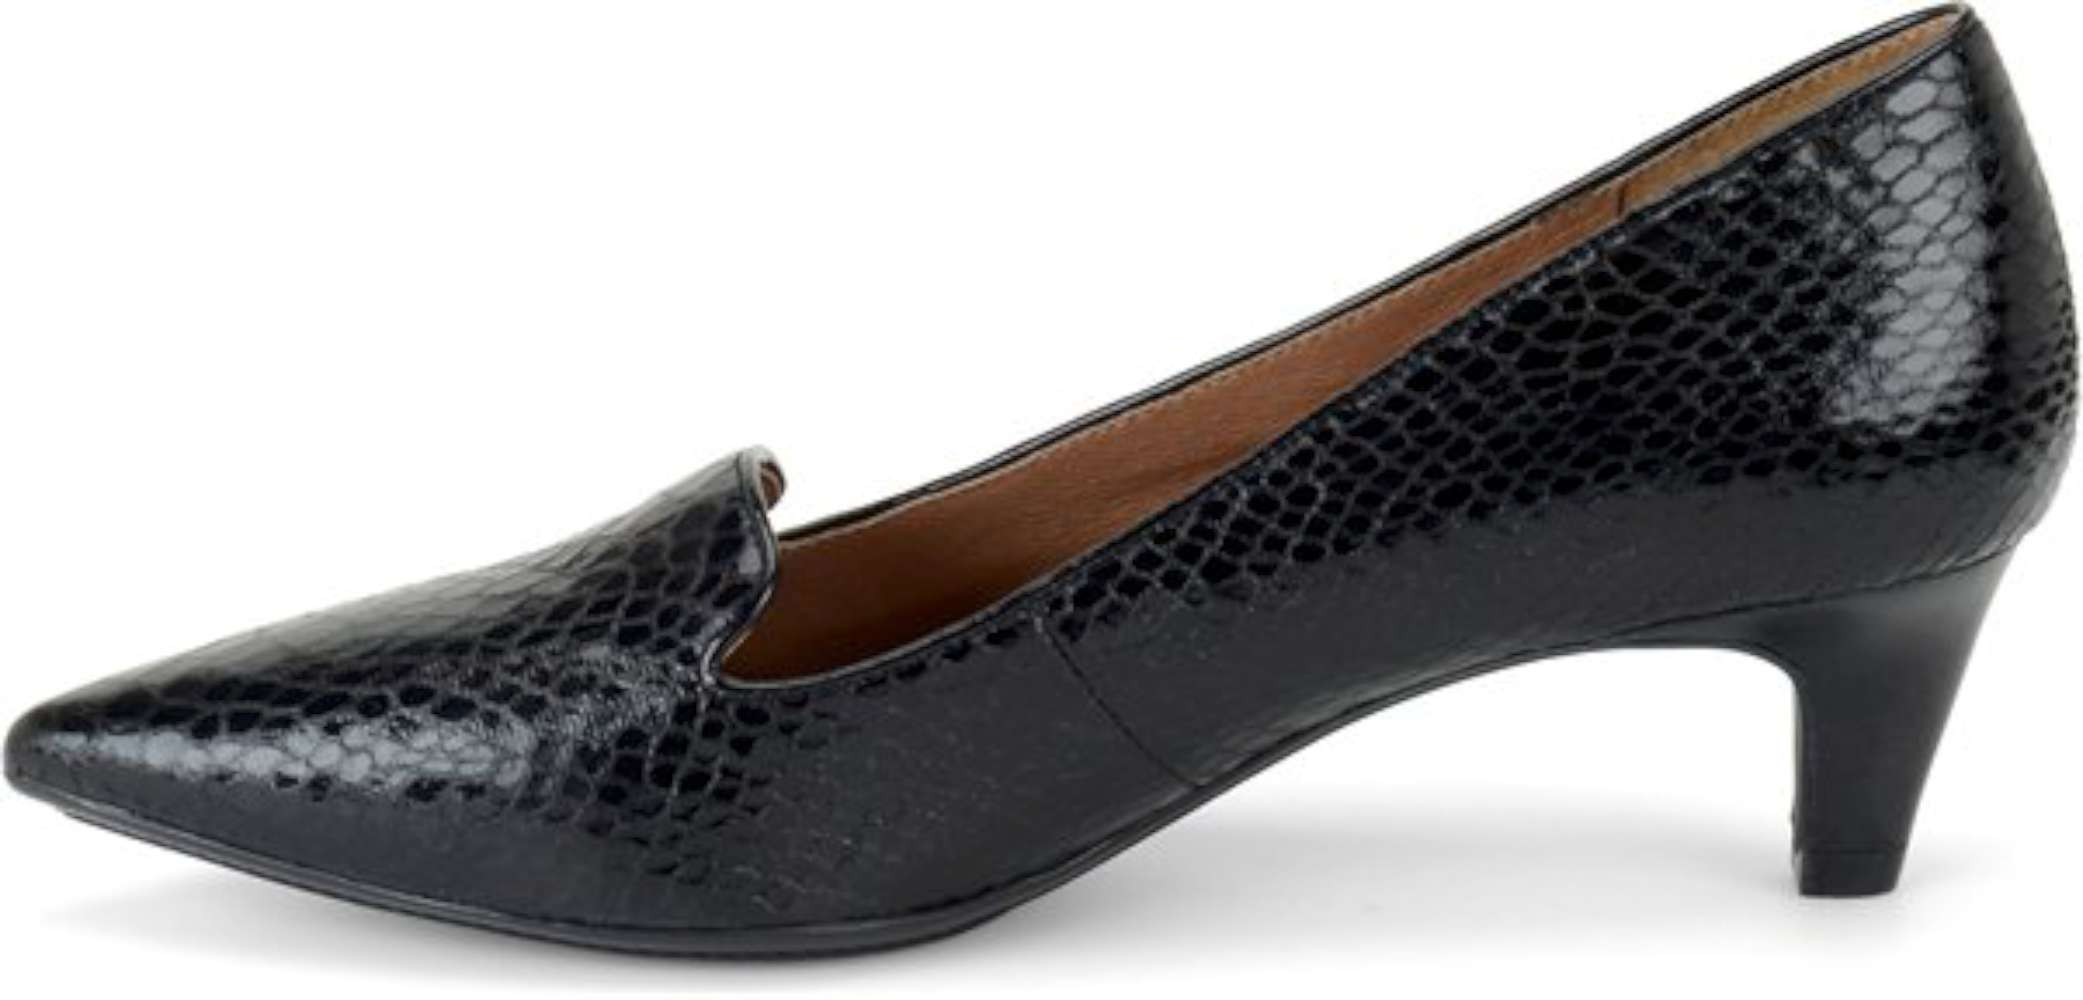 Sofft Womens Vesper Leather Pointed Toe Classic Pumps by Sofft